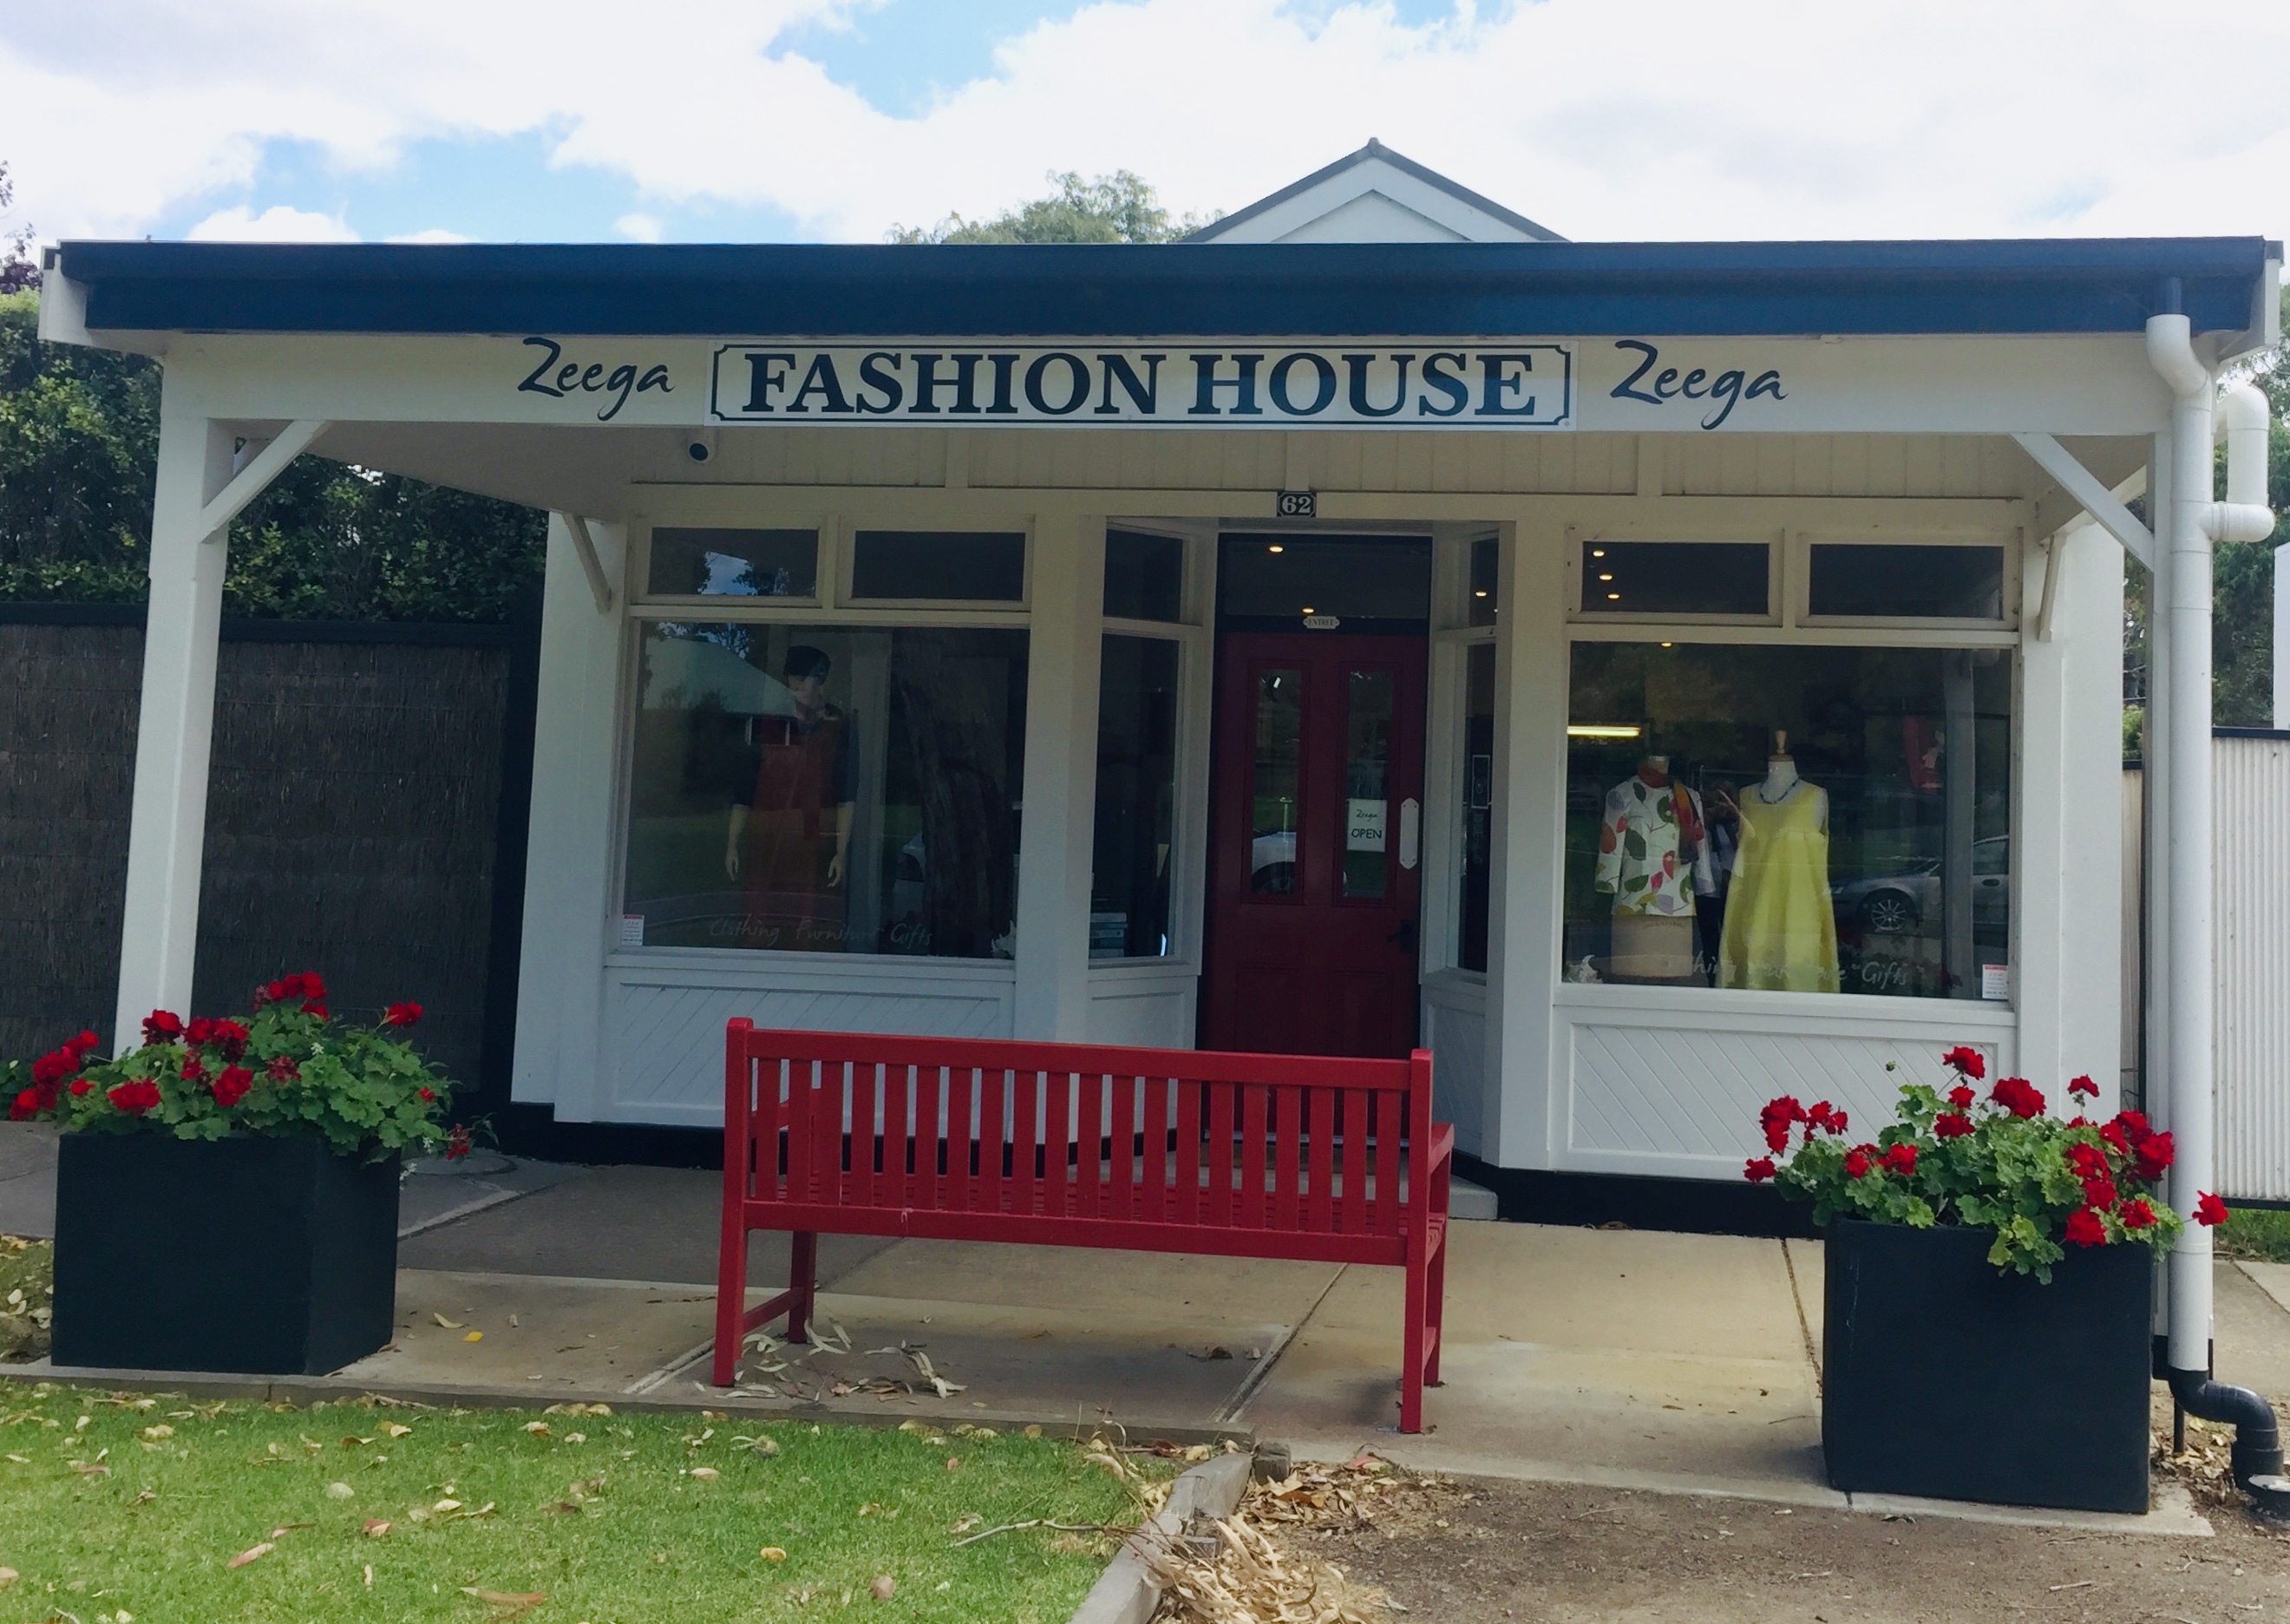 A shopfront with 'Fashion House' written above the window